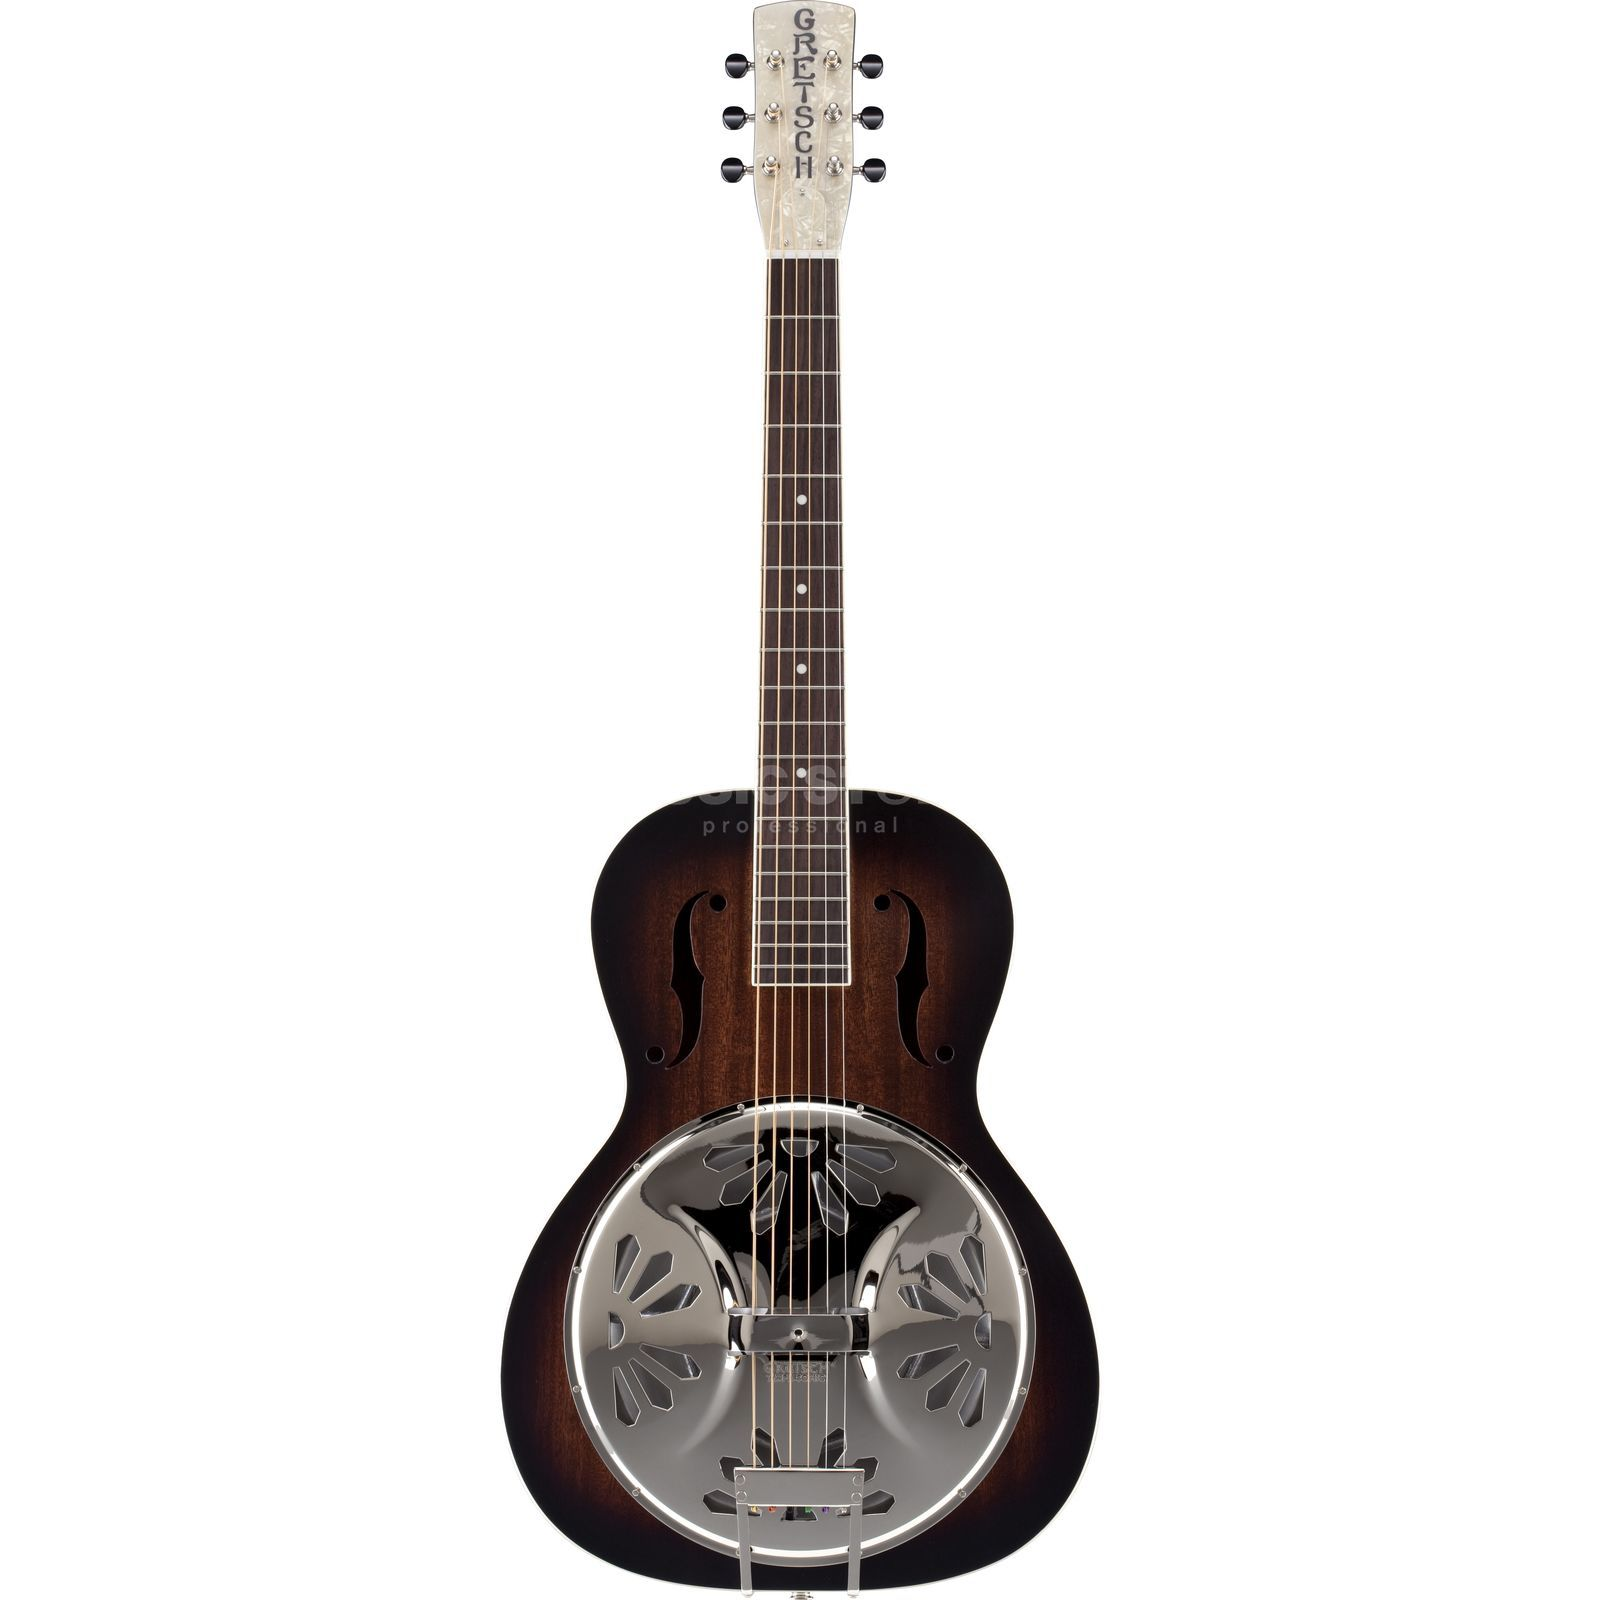 Gretsch G9220 Bobtail Round Neck Deluxe Resonator Guitar Product Image